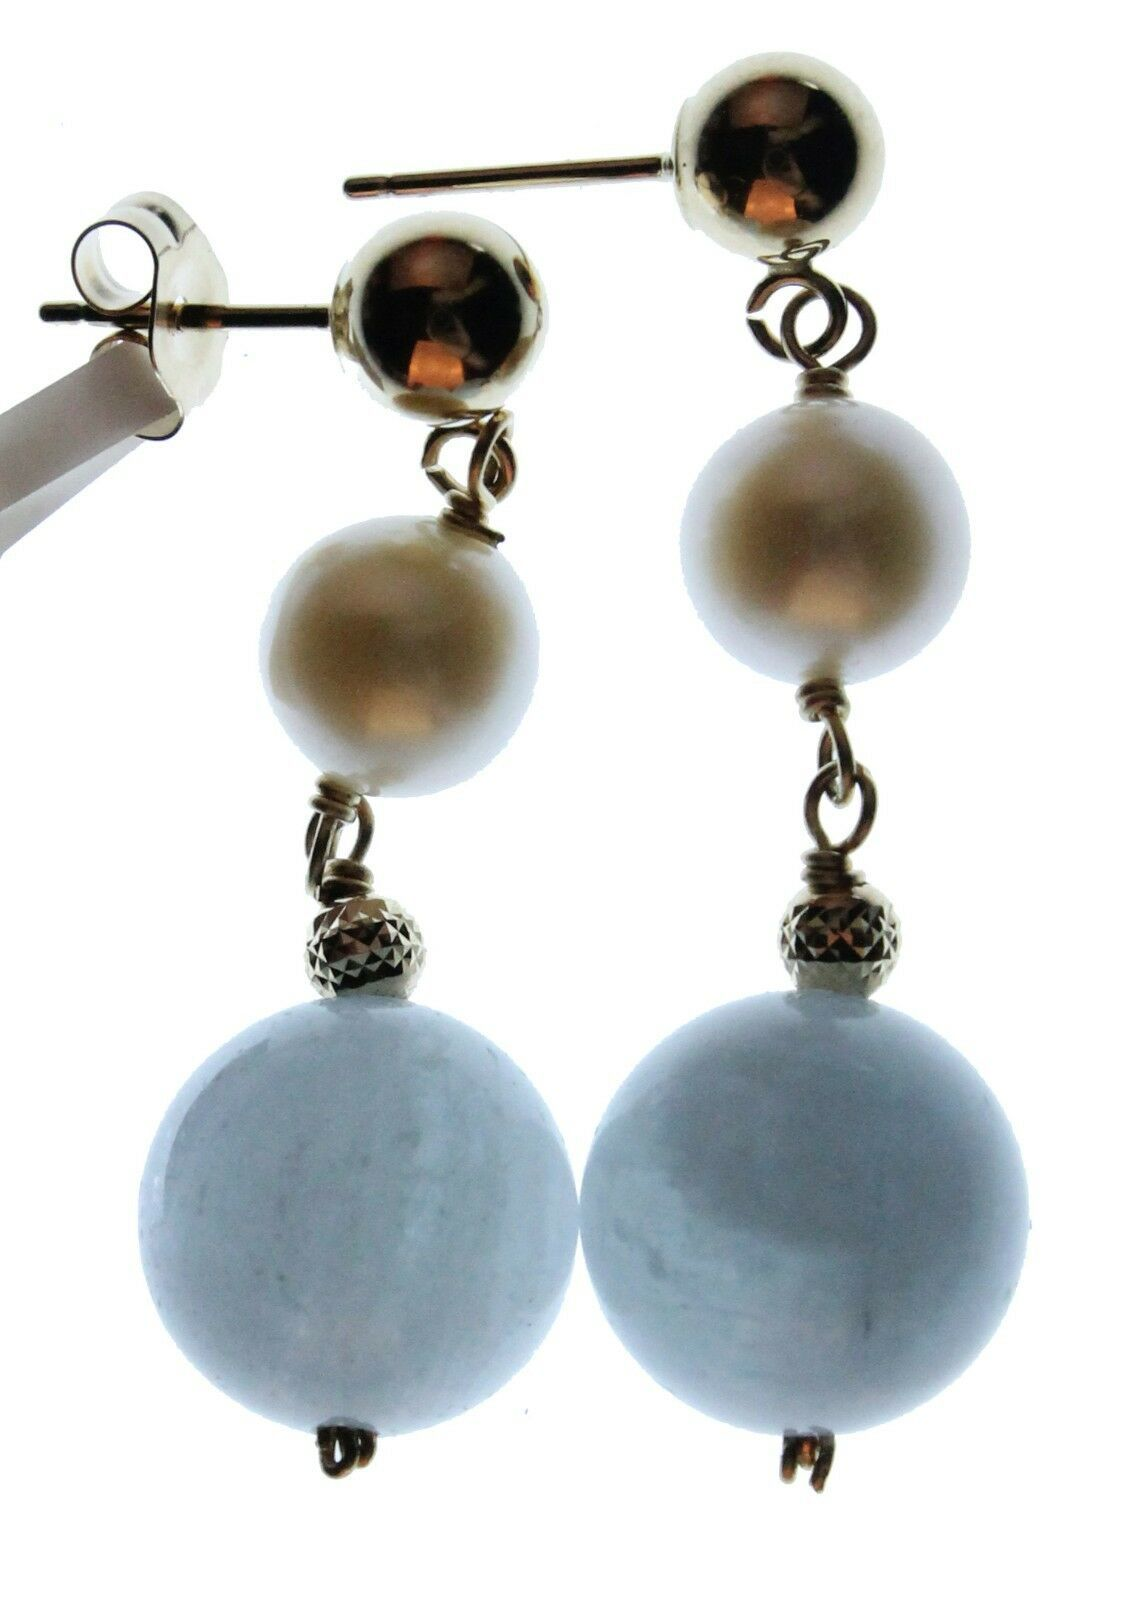 14k Yellow Gold 6mm White Freshwater Cultured Pearl 10mm Aquamarin Drop Earrings